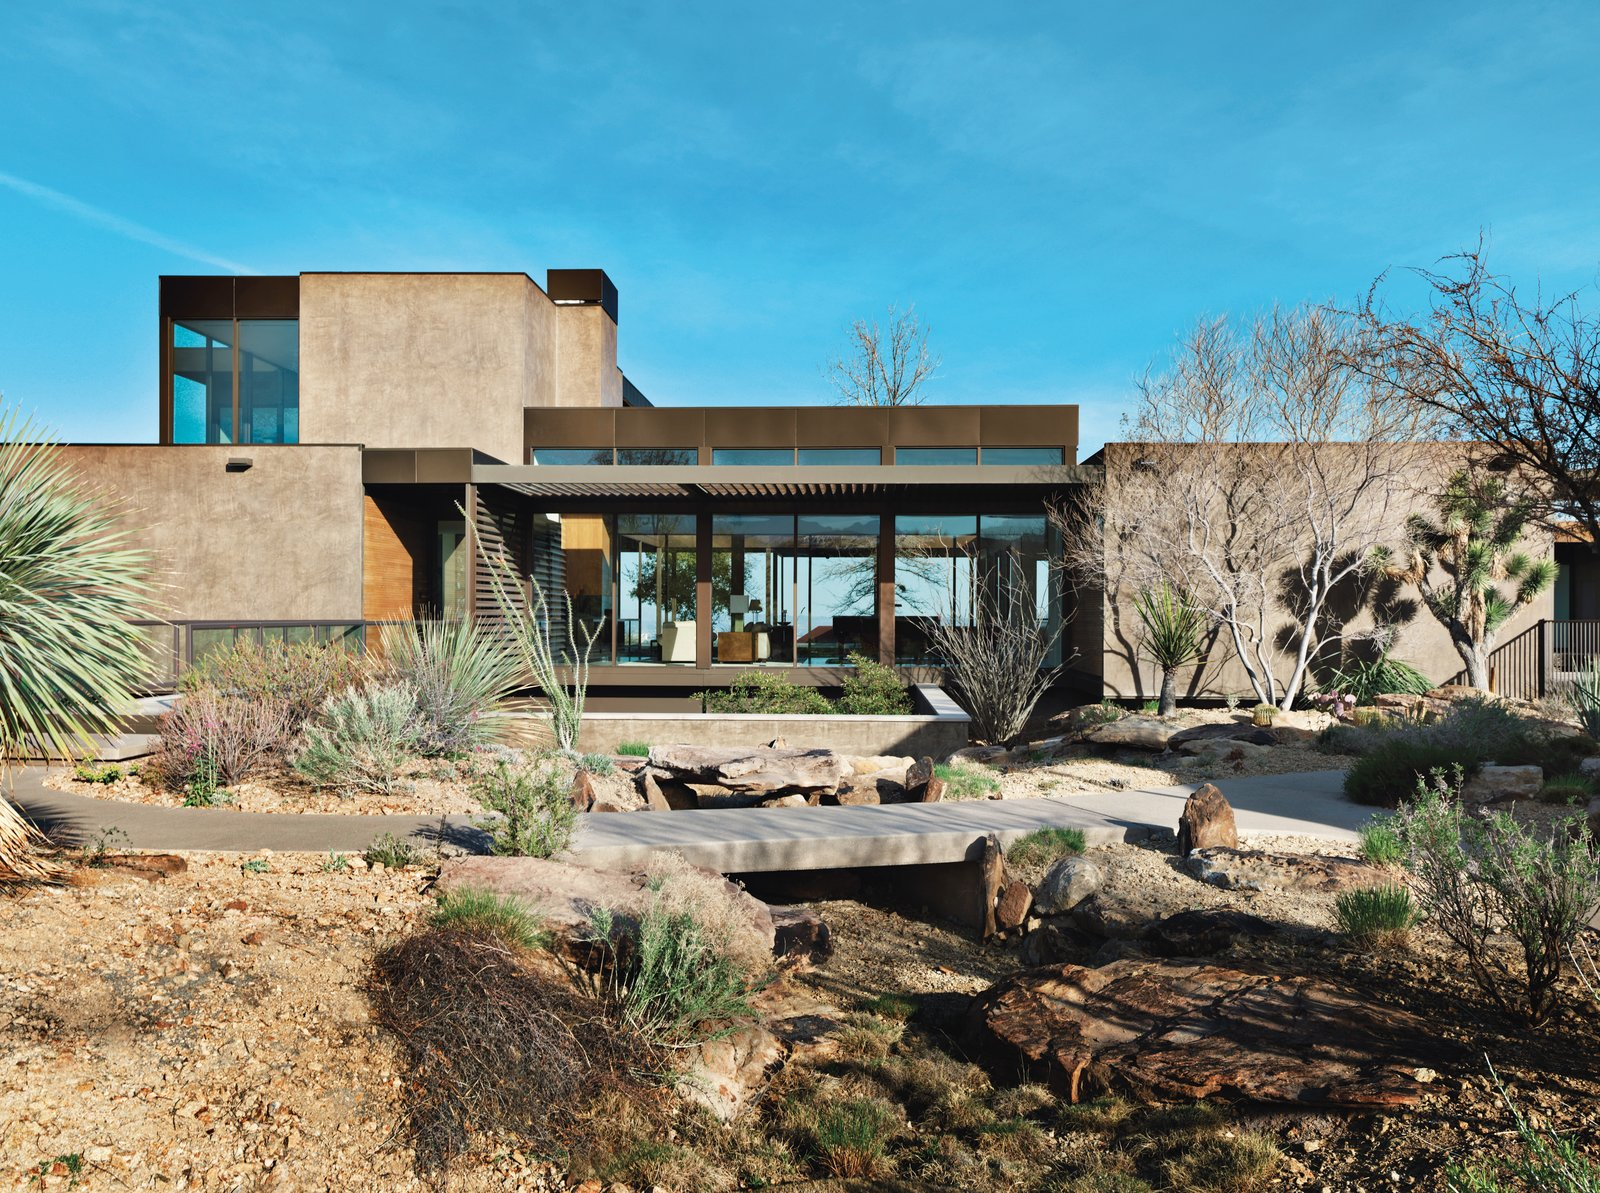 A Desert Prefab Hits the Jackpot in Sin City - Dwell